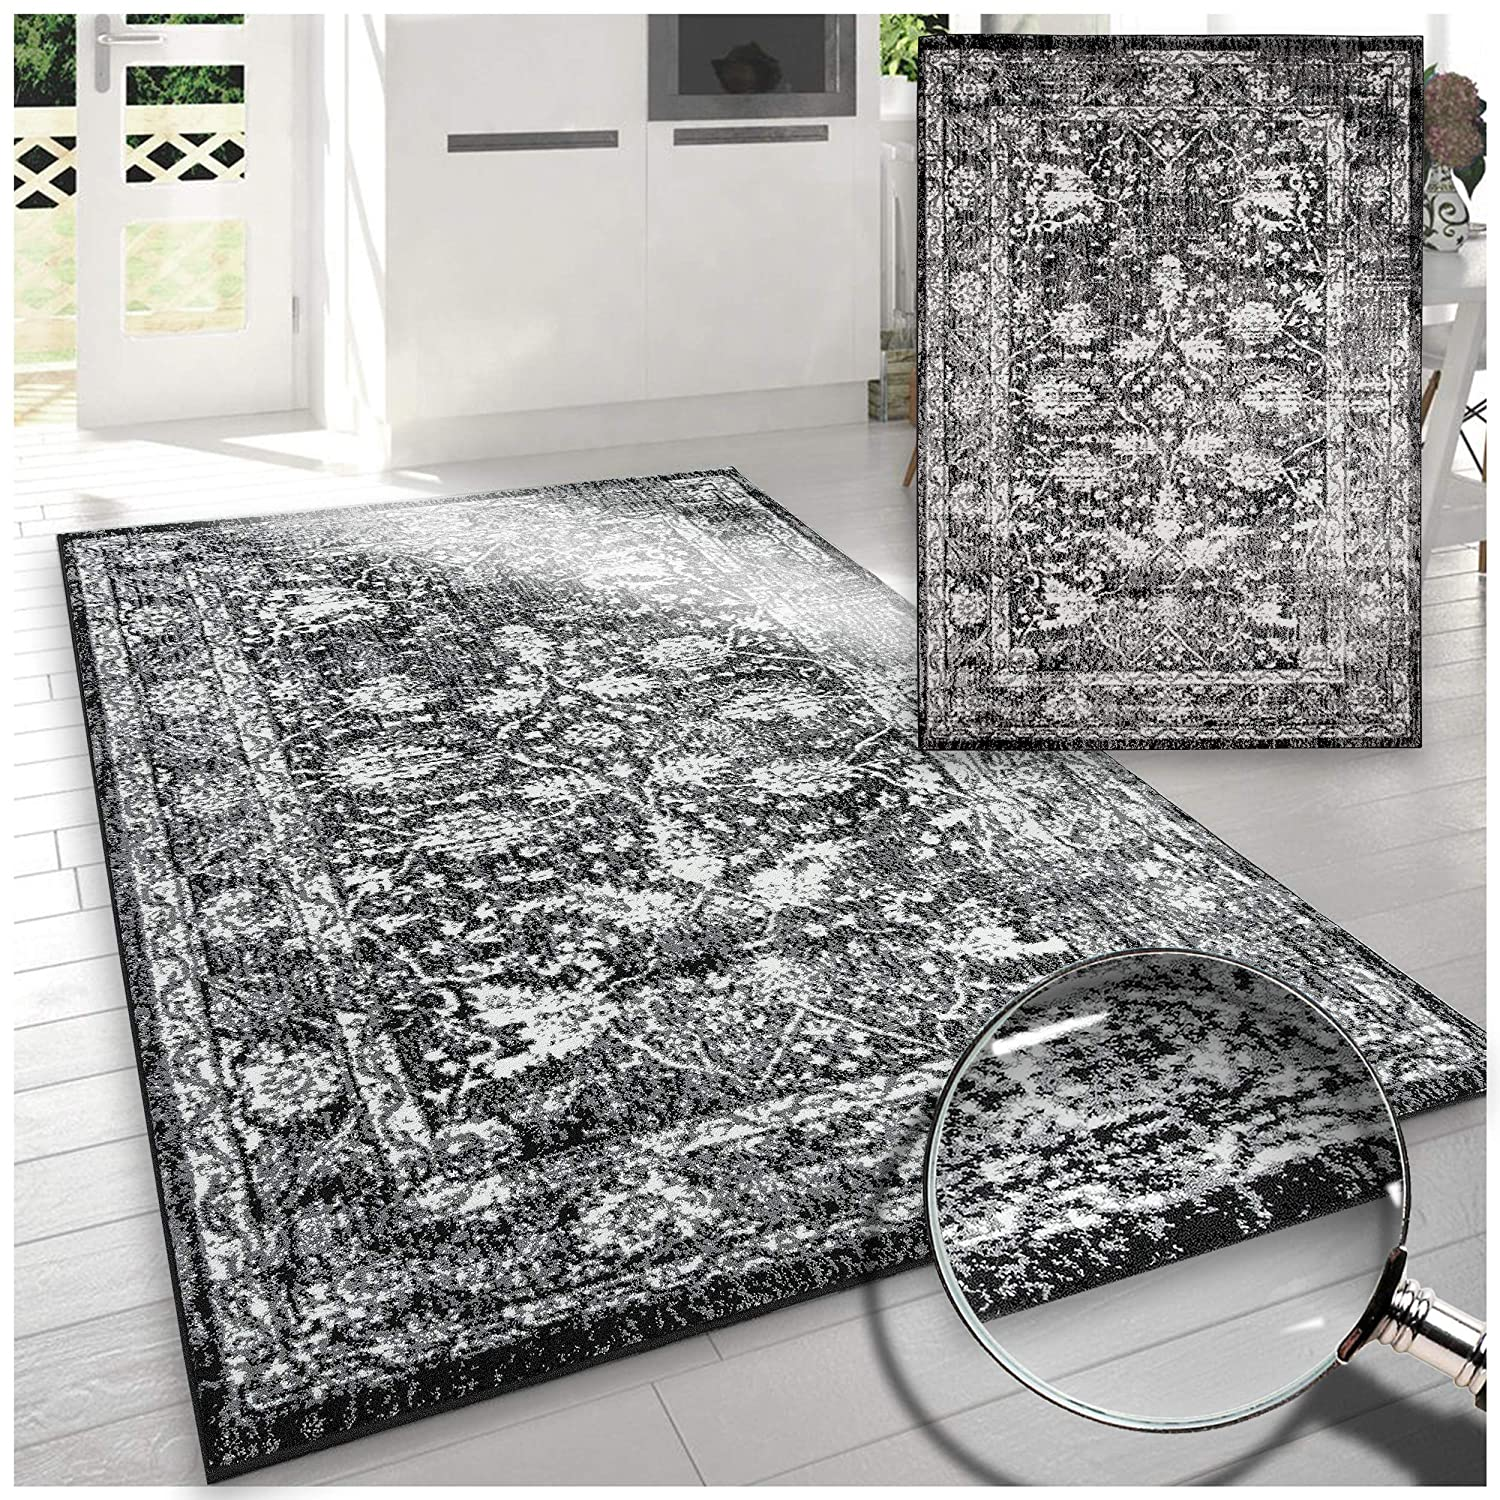 A2Z Large Grey Mix Modern Rugs Vintage Fading Patterns Design Home Decor Runners